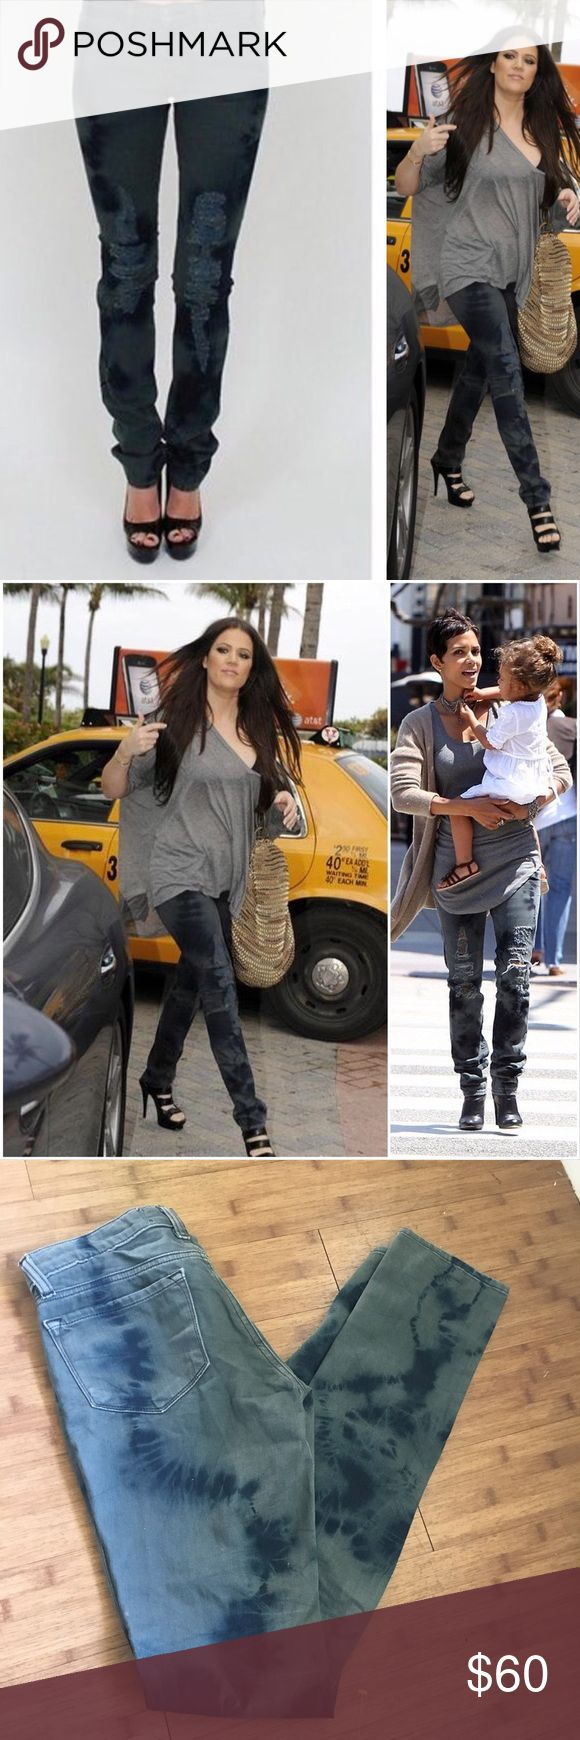 """J Brand Boutique Slashed Berlin Distressed Jeans Super cute factory distressed and bleached jeans. As seen on Halle Berry and Khloe Kardashian! Excellent pre-owned condition. No rips, holes or stains.  Approximate measurements: 14"""" waist laying flat 7"""" rise 34"""" inseam J Brand Jeans Skinny"""